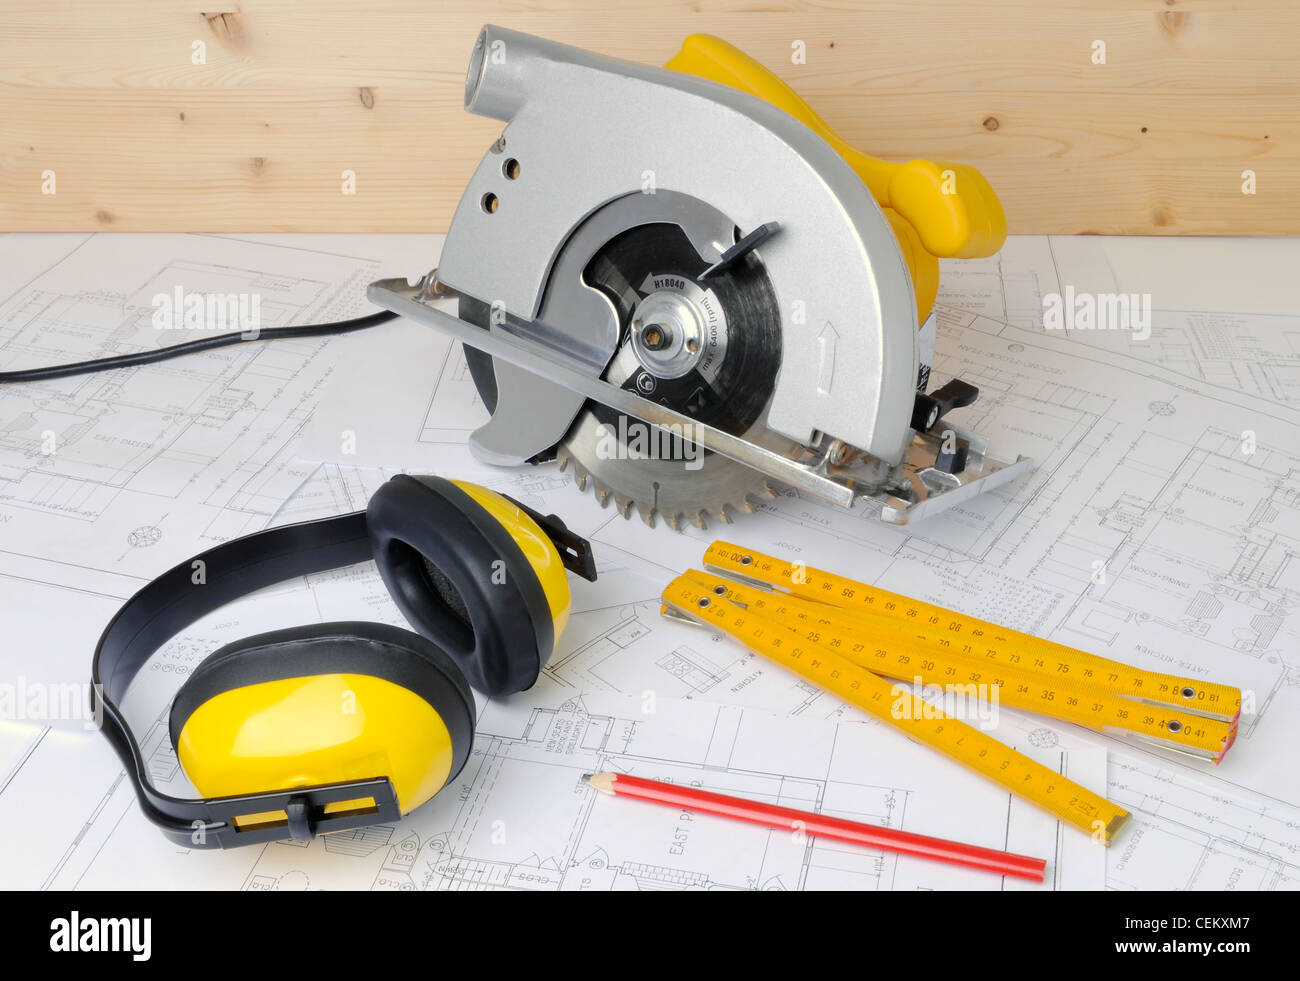 carpenter tools and construction plans - Stock Image